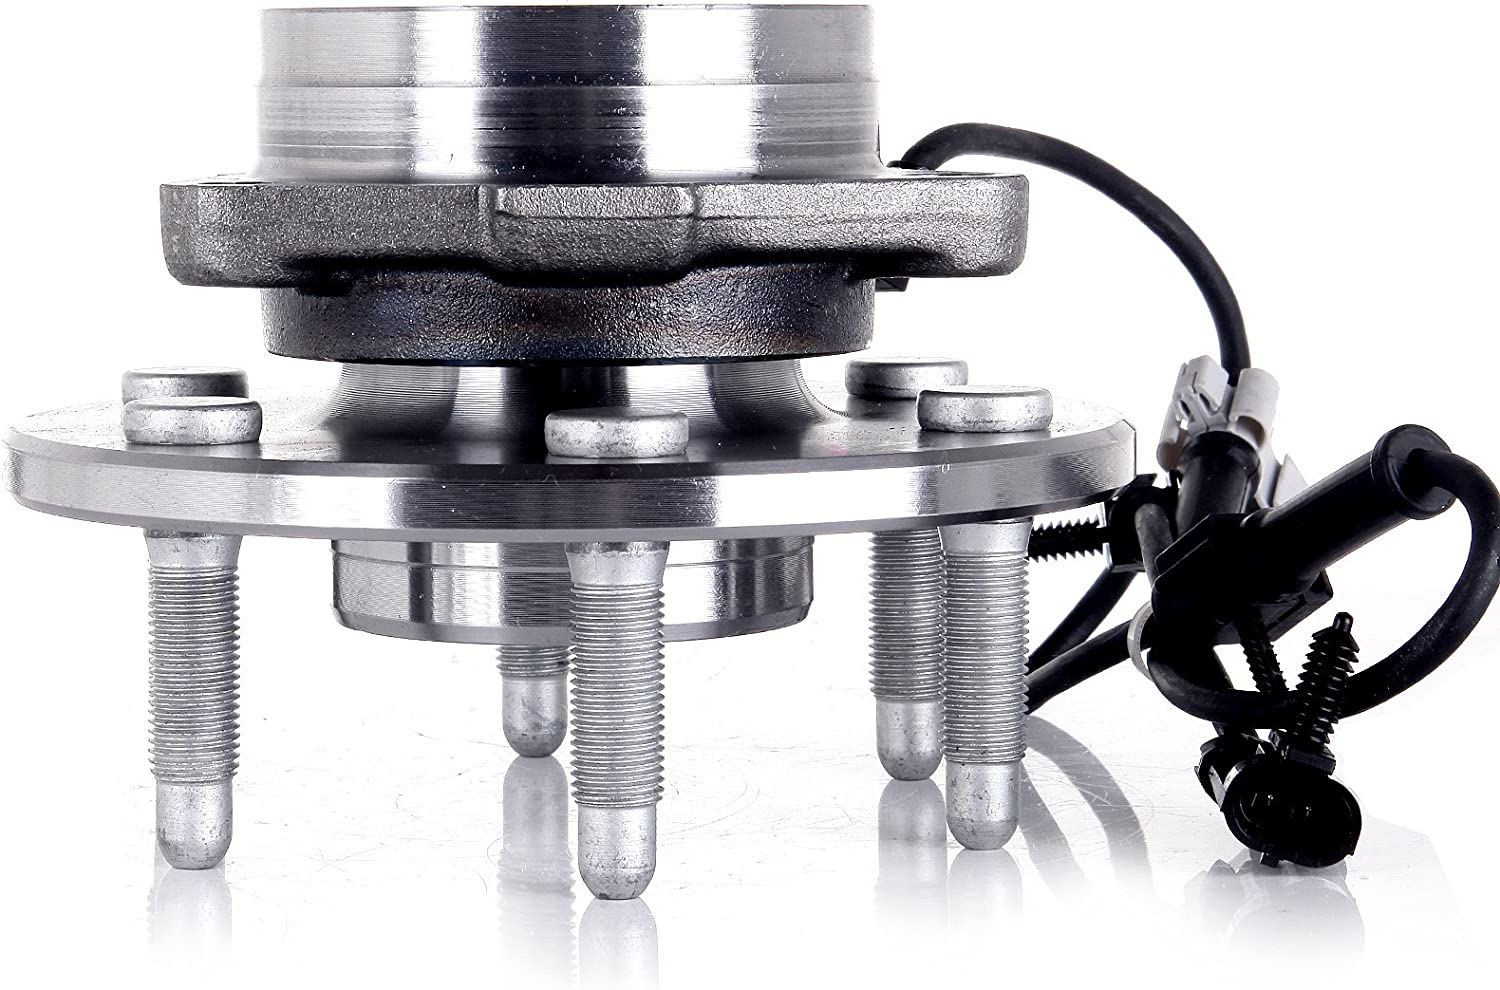 SCITOO Wheel Bearing and Hub Assembly for 4WD ONLY Cadillac Escalade GMC Yukon XL 1500 1999-2006 Chevrolet Silverado 1500 Compatible for 515036 Front 6 bolts W//ABS 1 pack